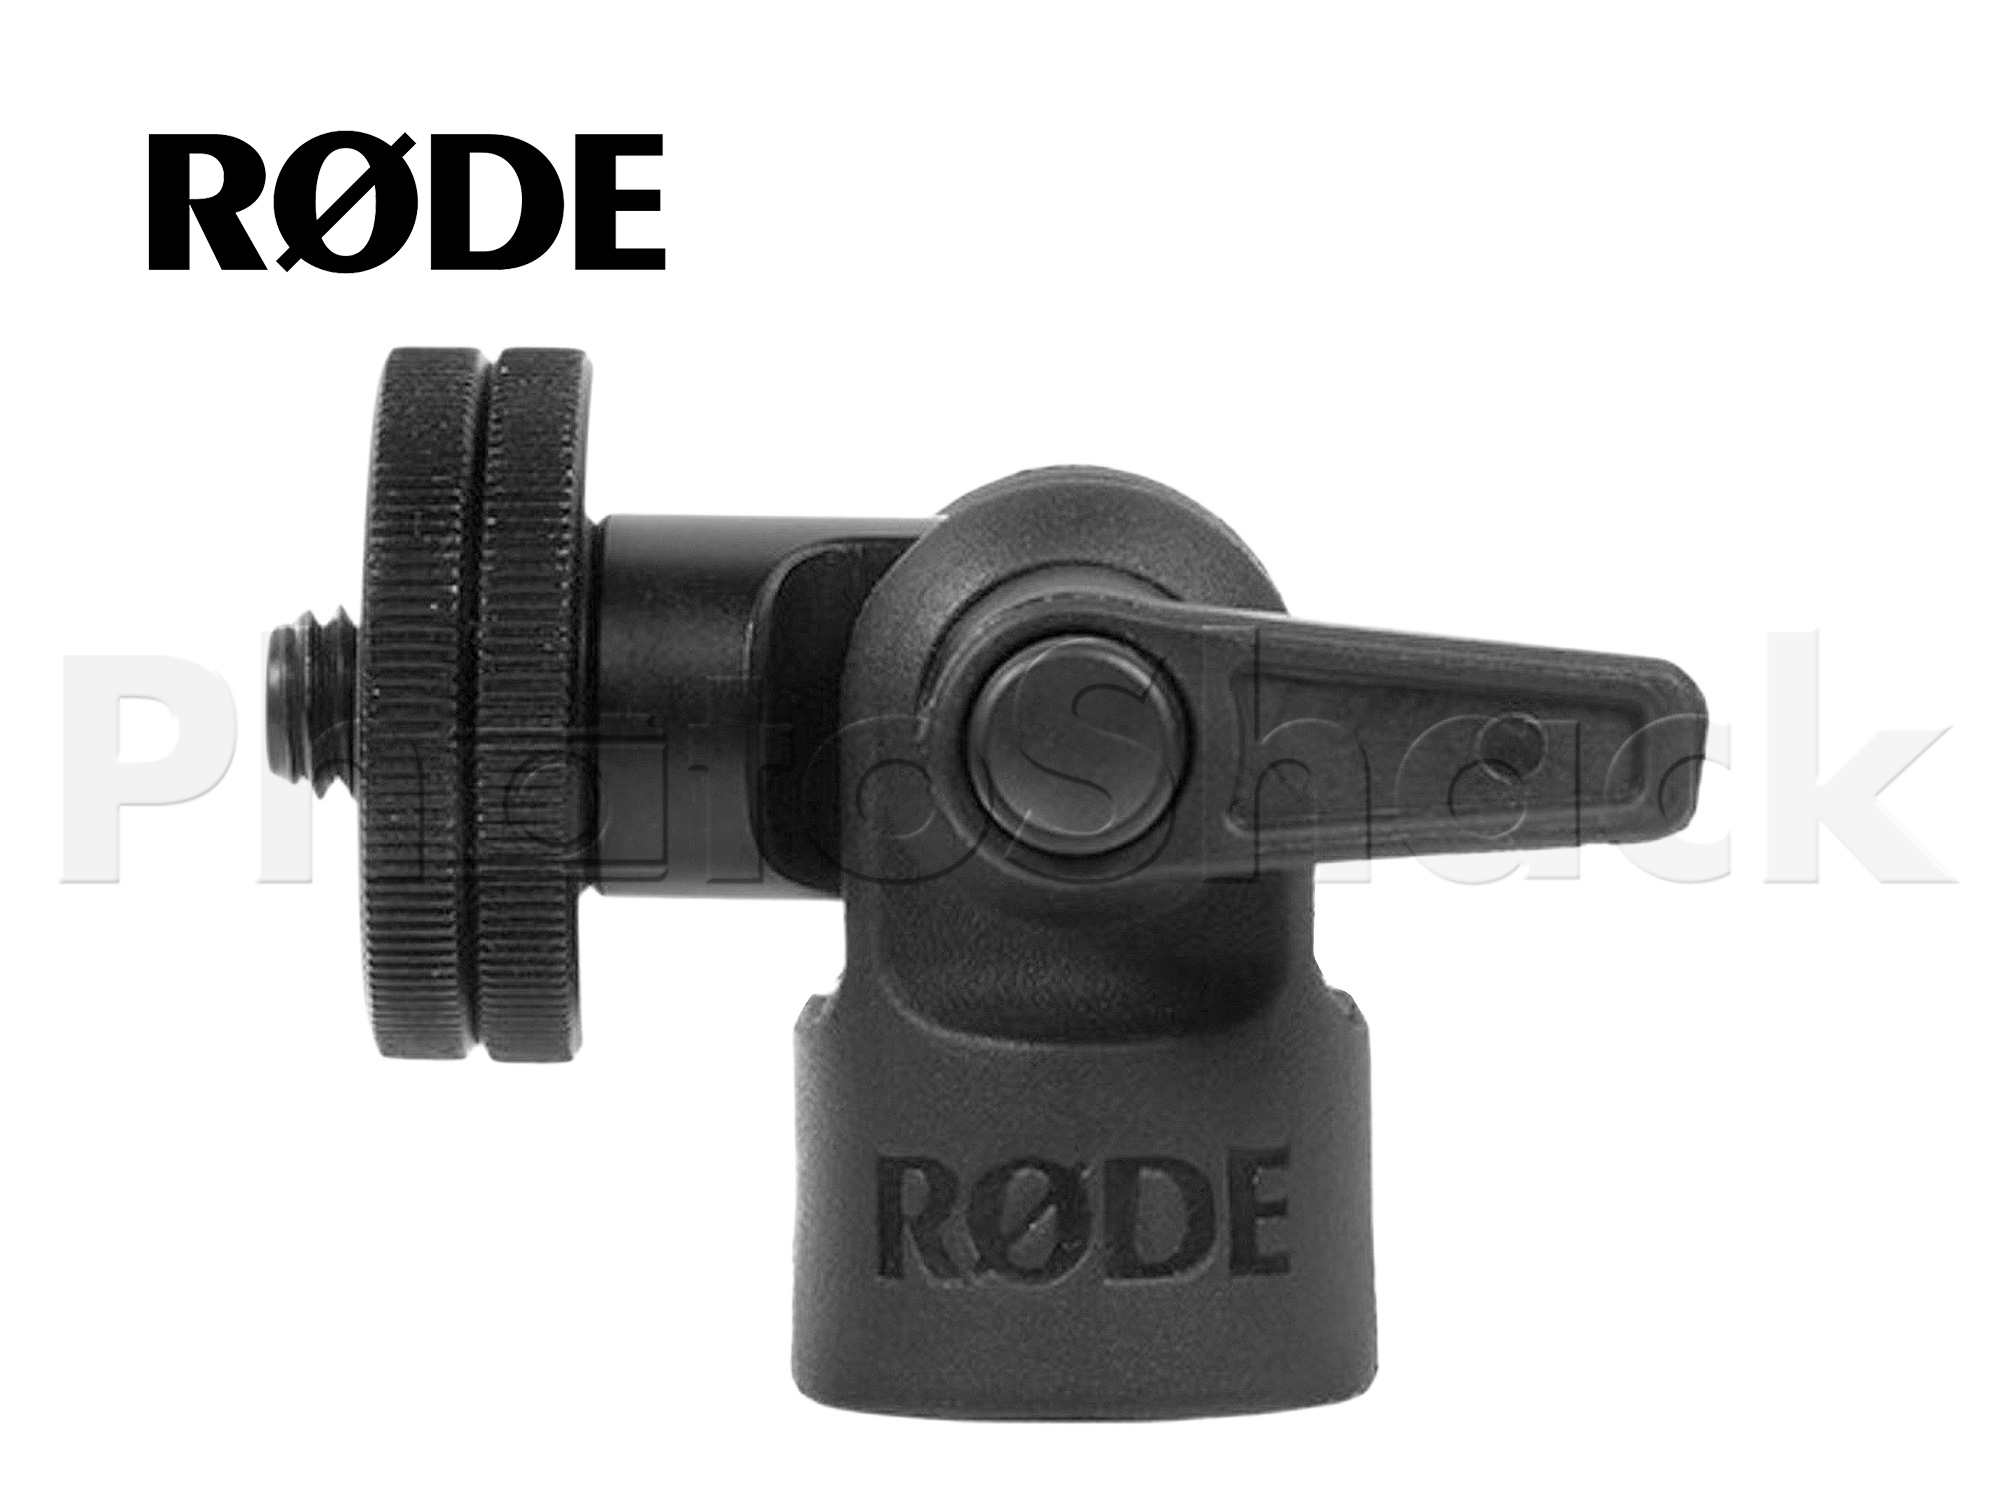 Rode Pivoting Boom Adapter